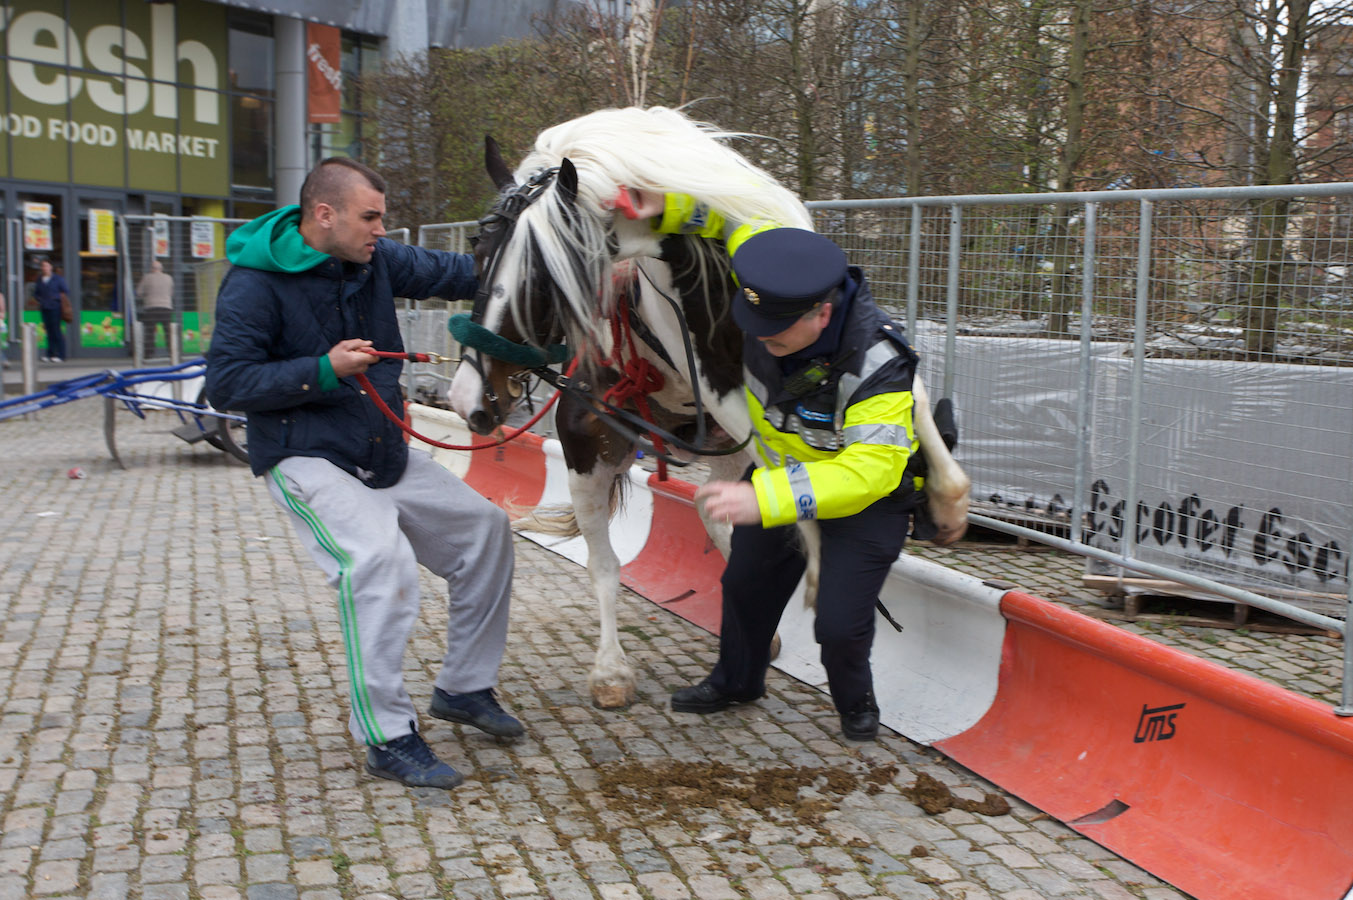 When a horse took 'fuck the police' a bit too literally